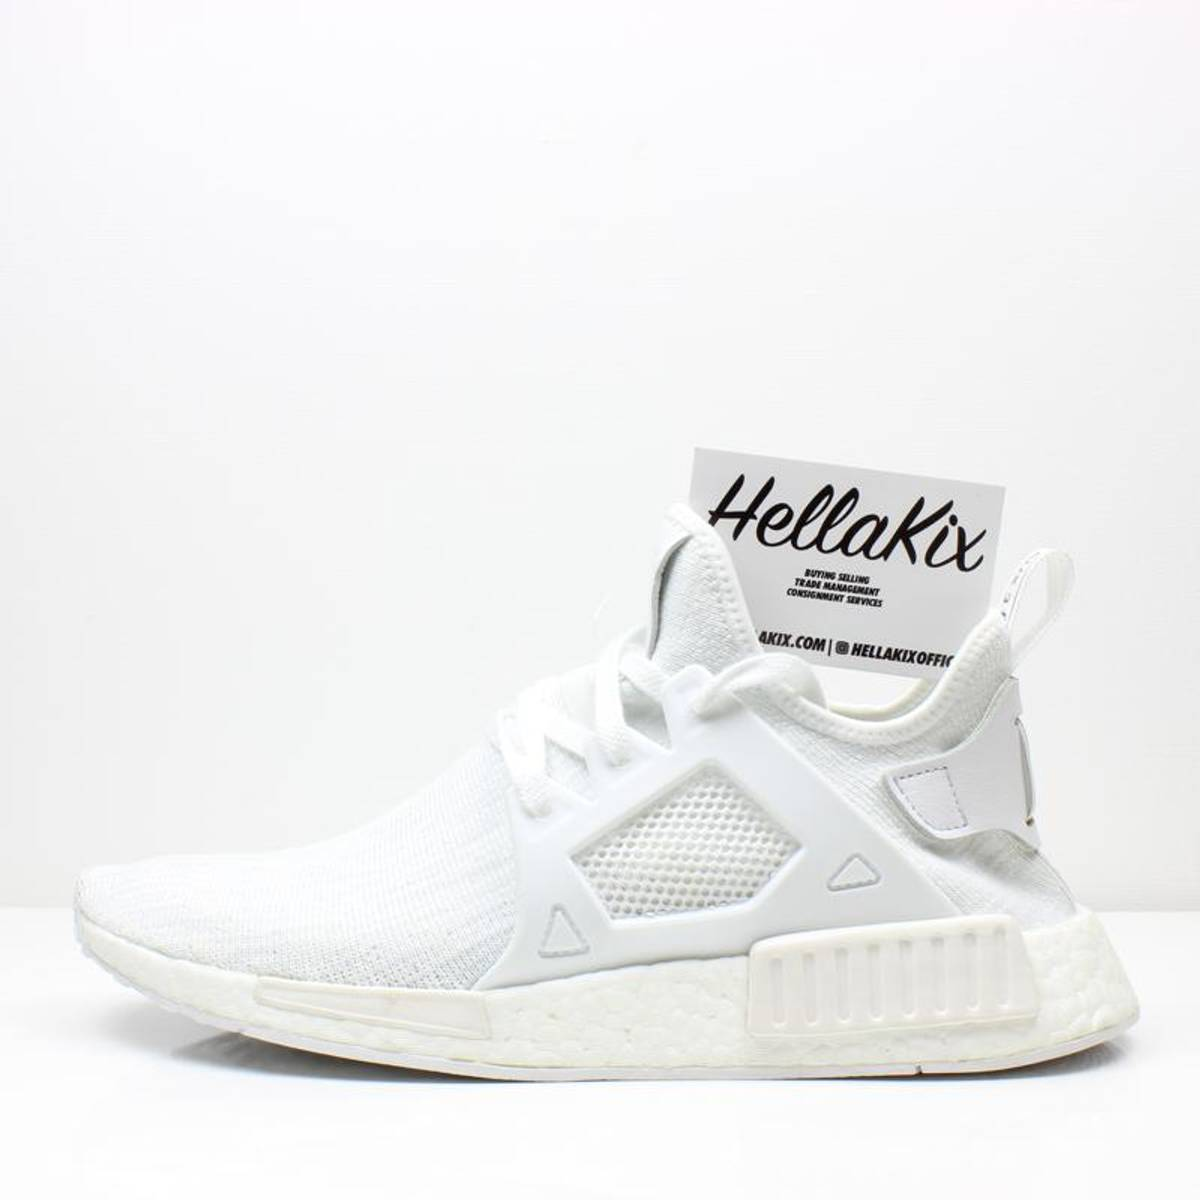 Cheap NMD XR1 Primeknit Sale, Buy Cheap NMD XR1 PK Shoes Online